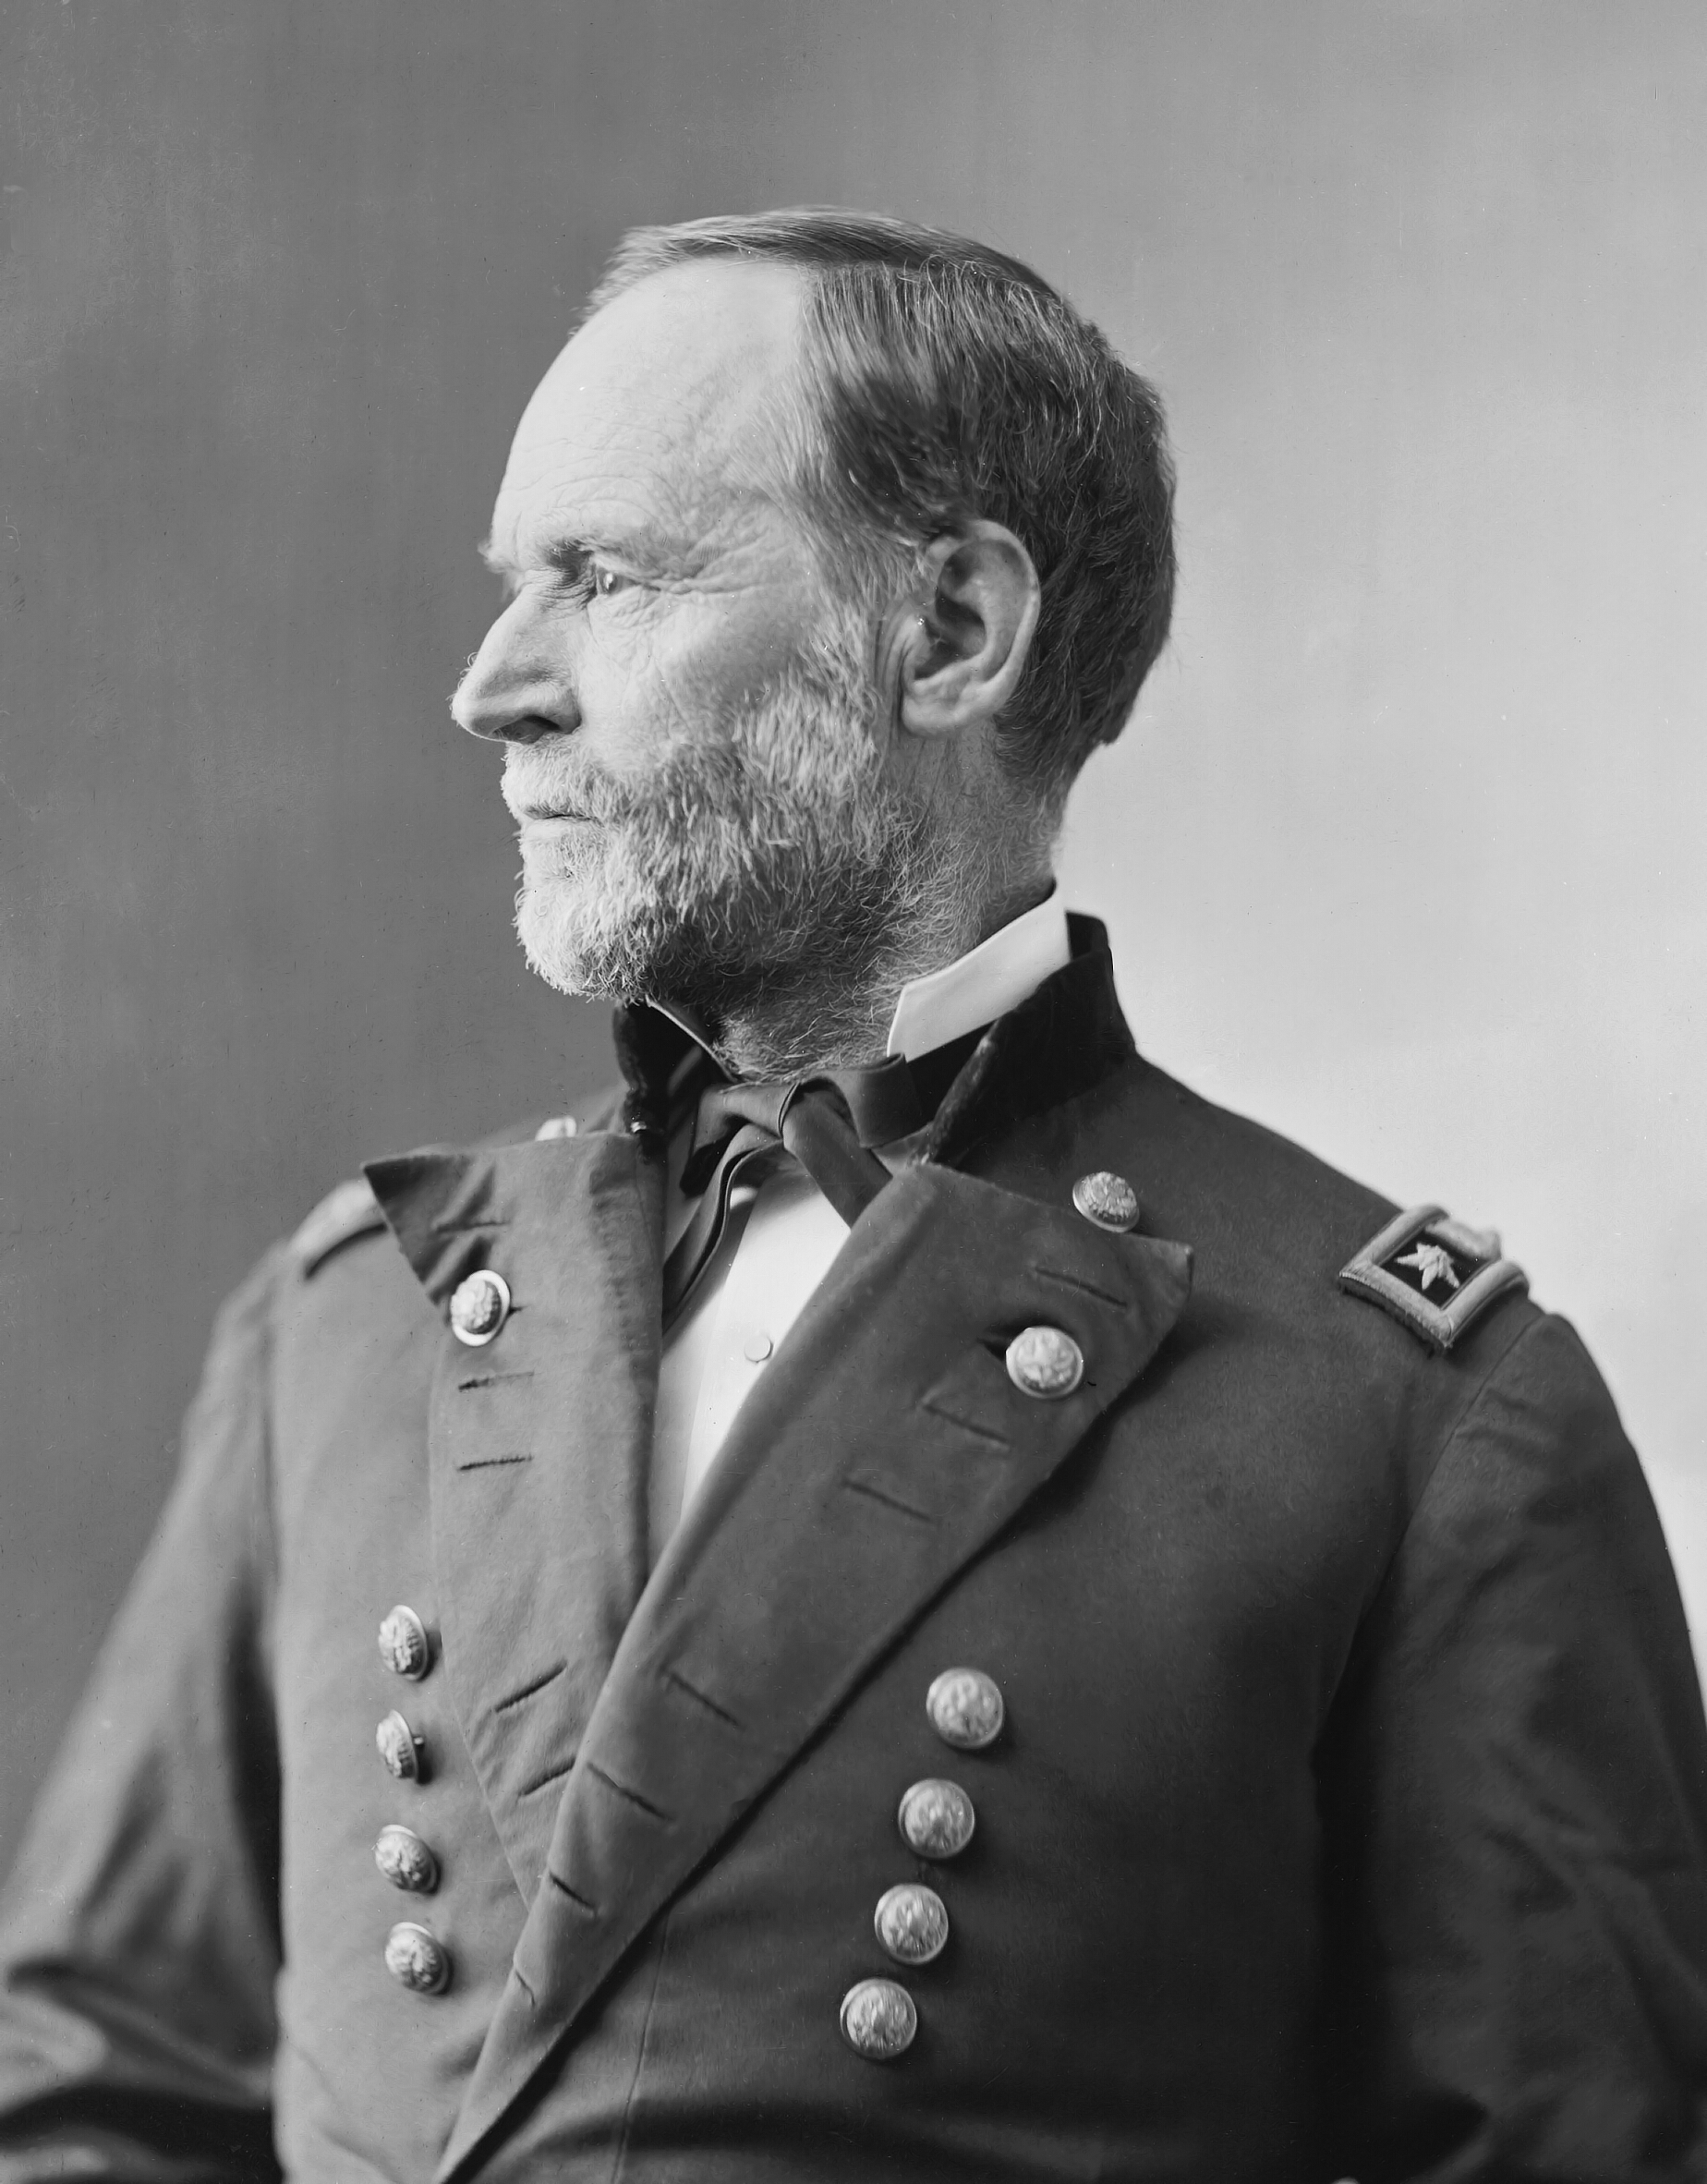 the timeline of william tecumseh sherman William tecumseh sherman (1820-1891) most famous for his scorched-earth tactics in the civil war, general william tecumseh sherman brought that same military philosophy to the west, where he shaped a policy and strategy that would finally subjugate all the native peoples of the plains.